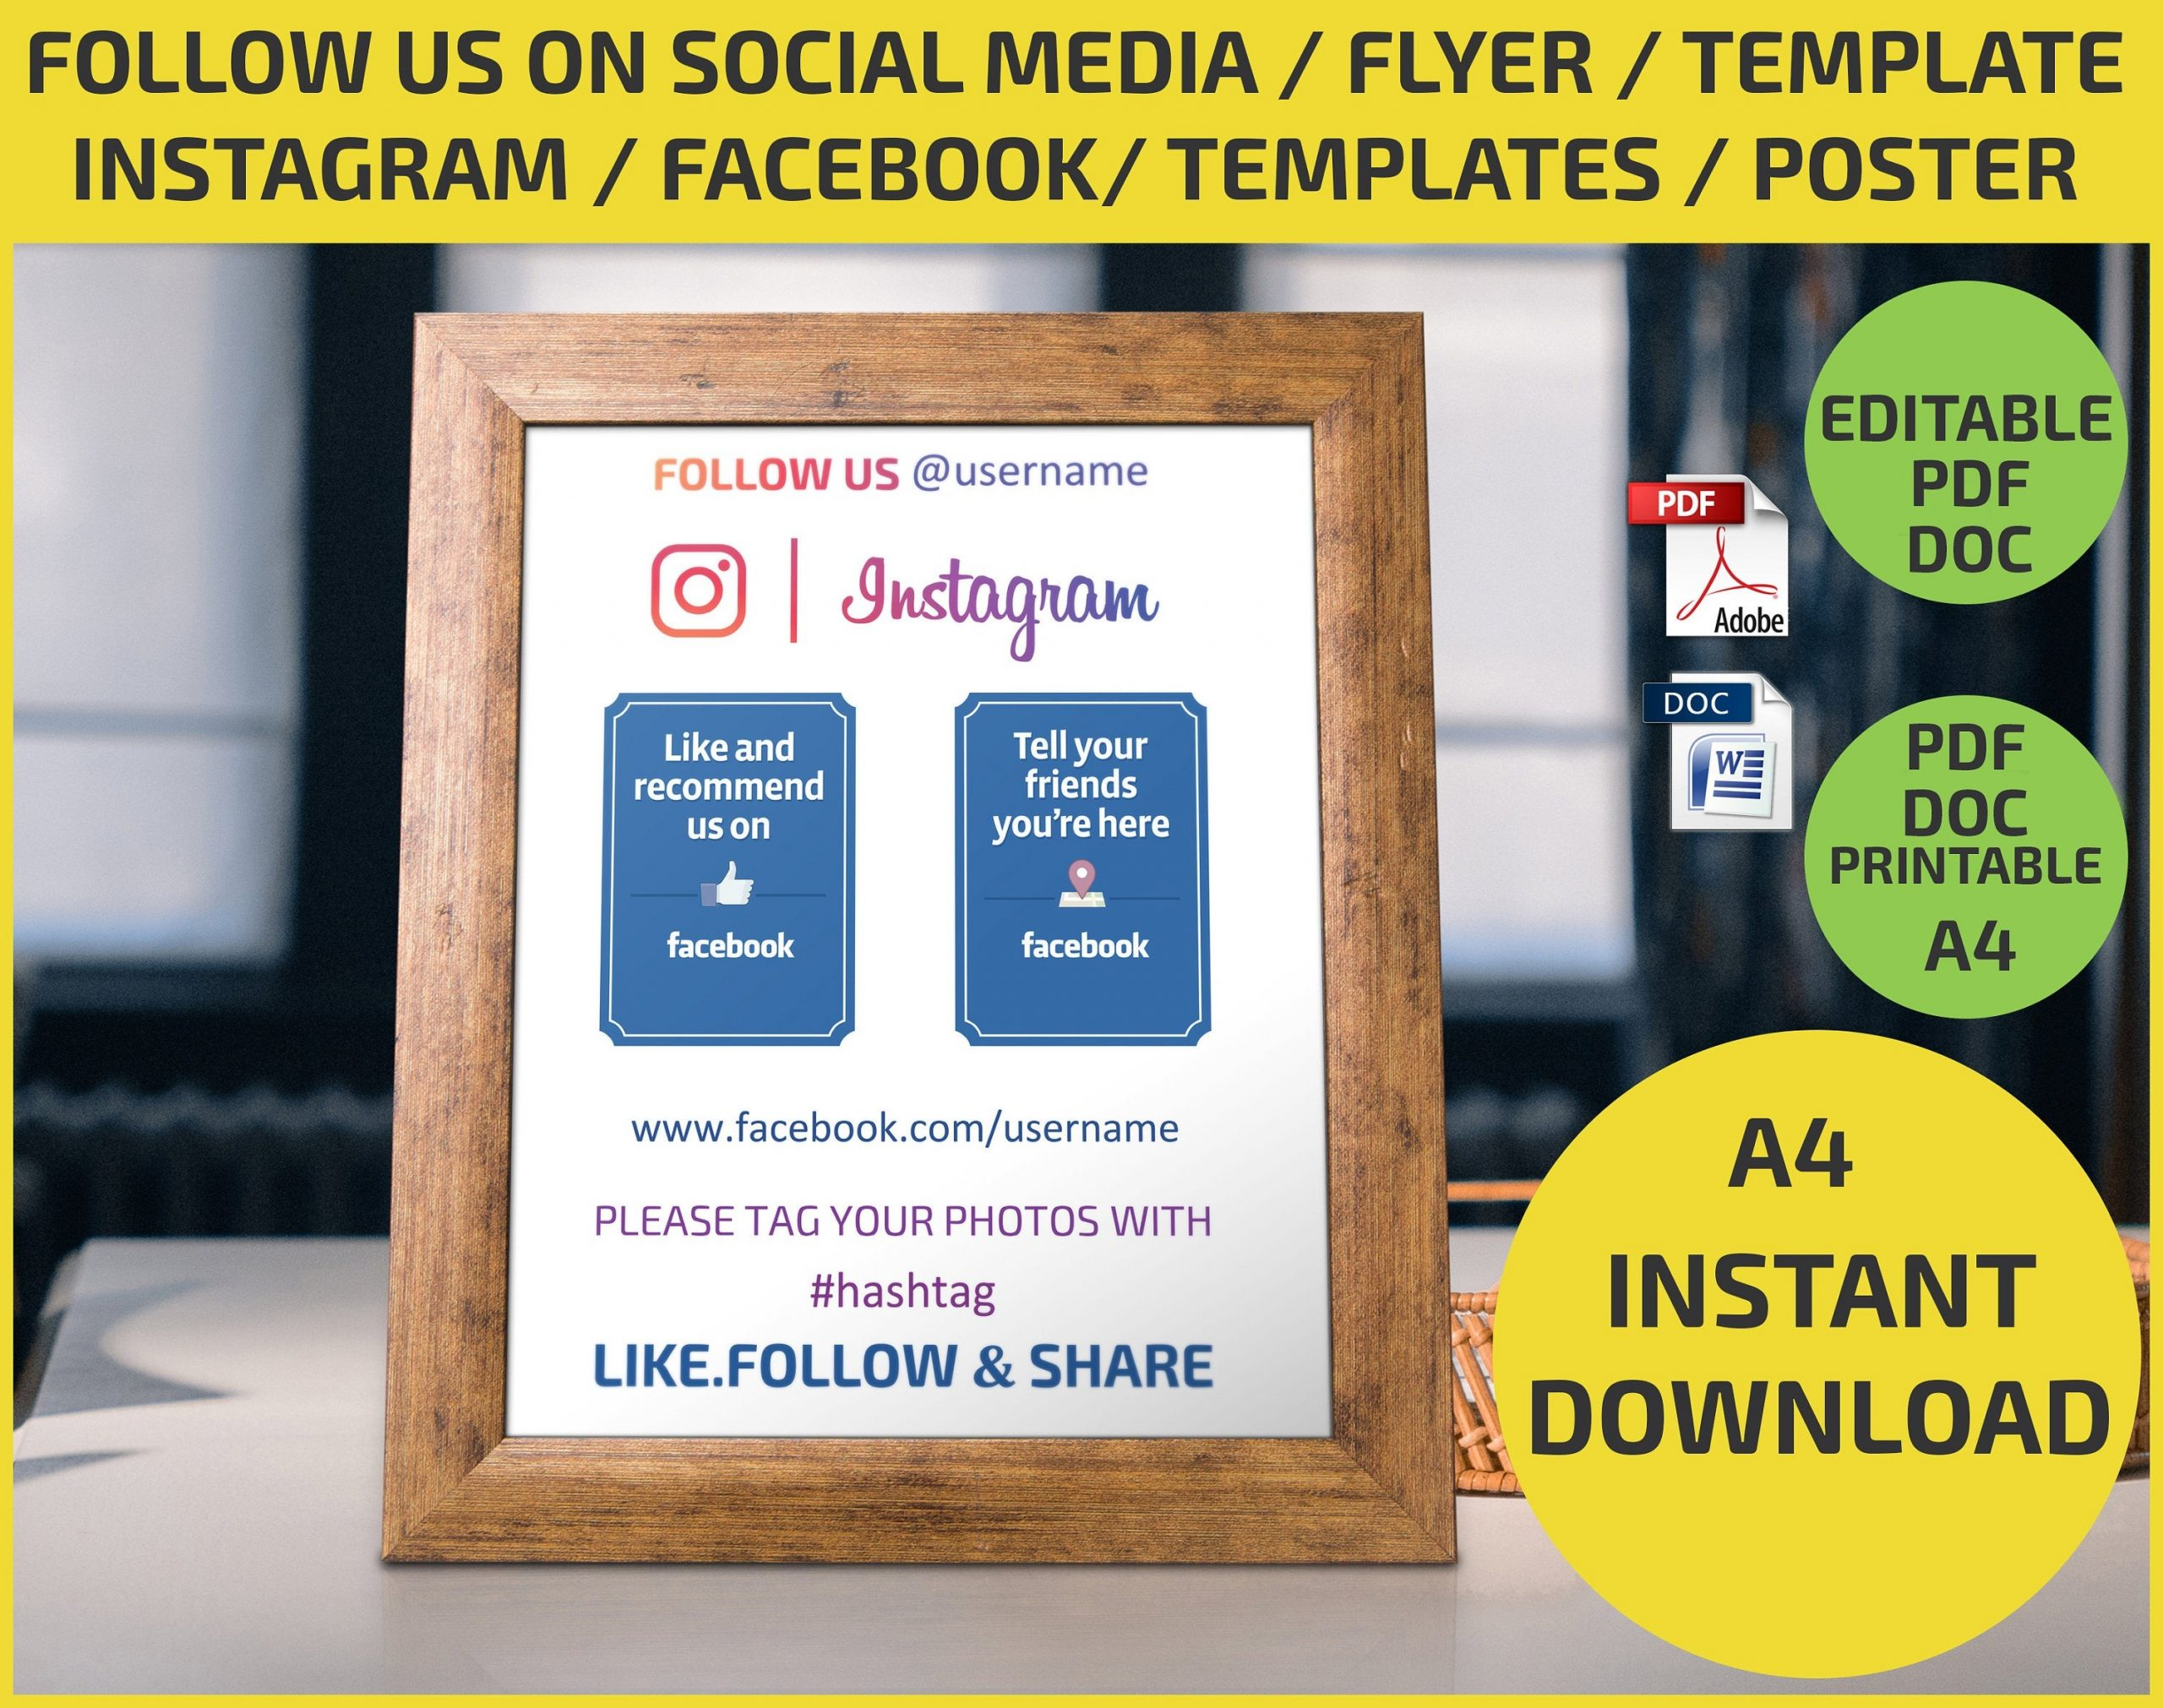 follow us flyer template  Follow Us on Social Media Check in / Like us / Share /   Etsy - follow us flyer template